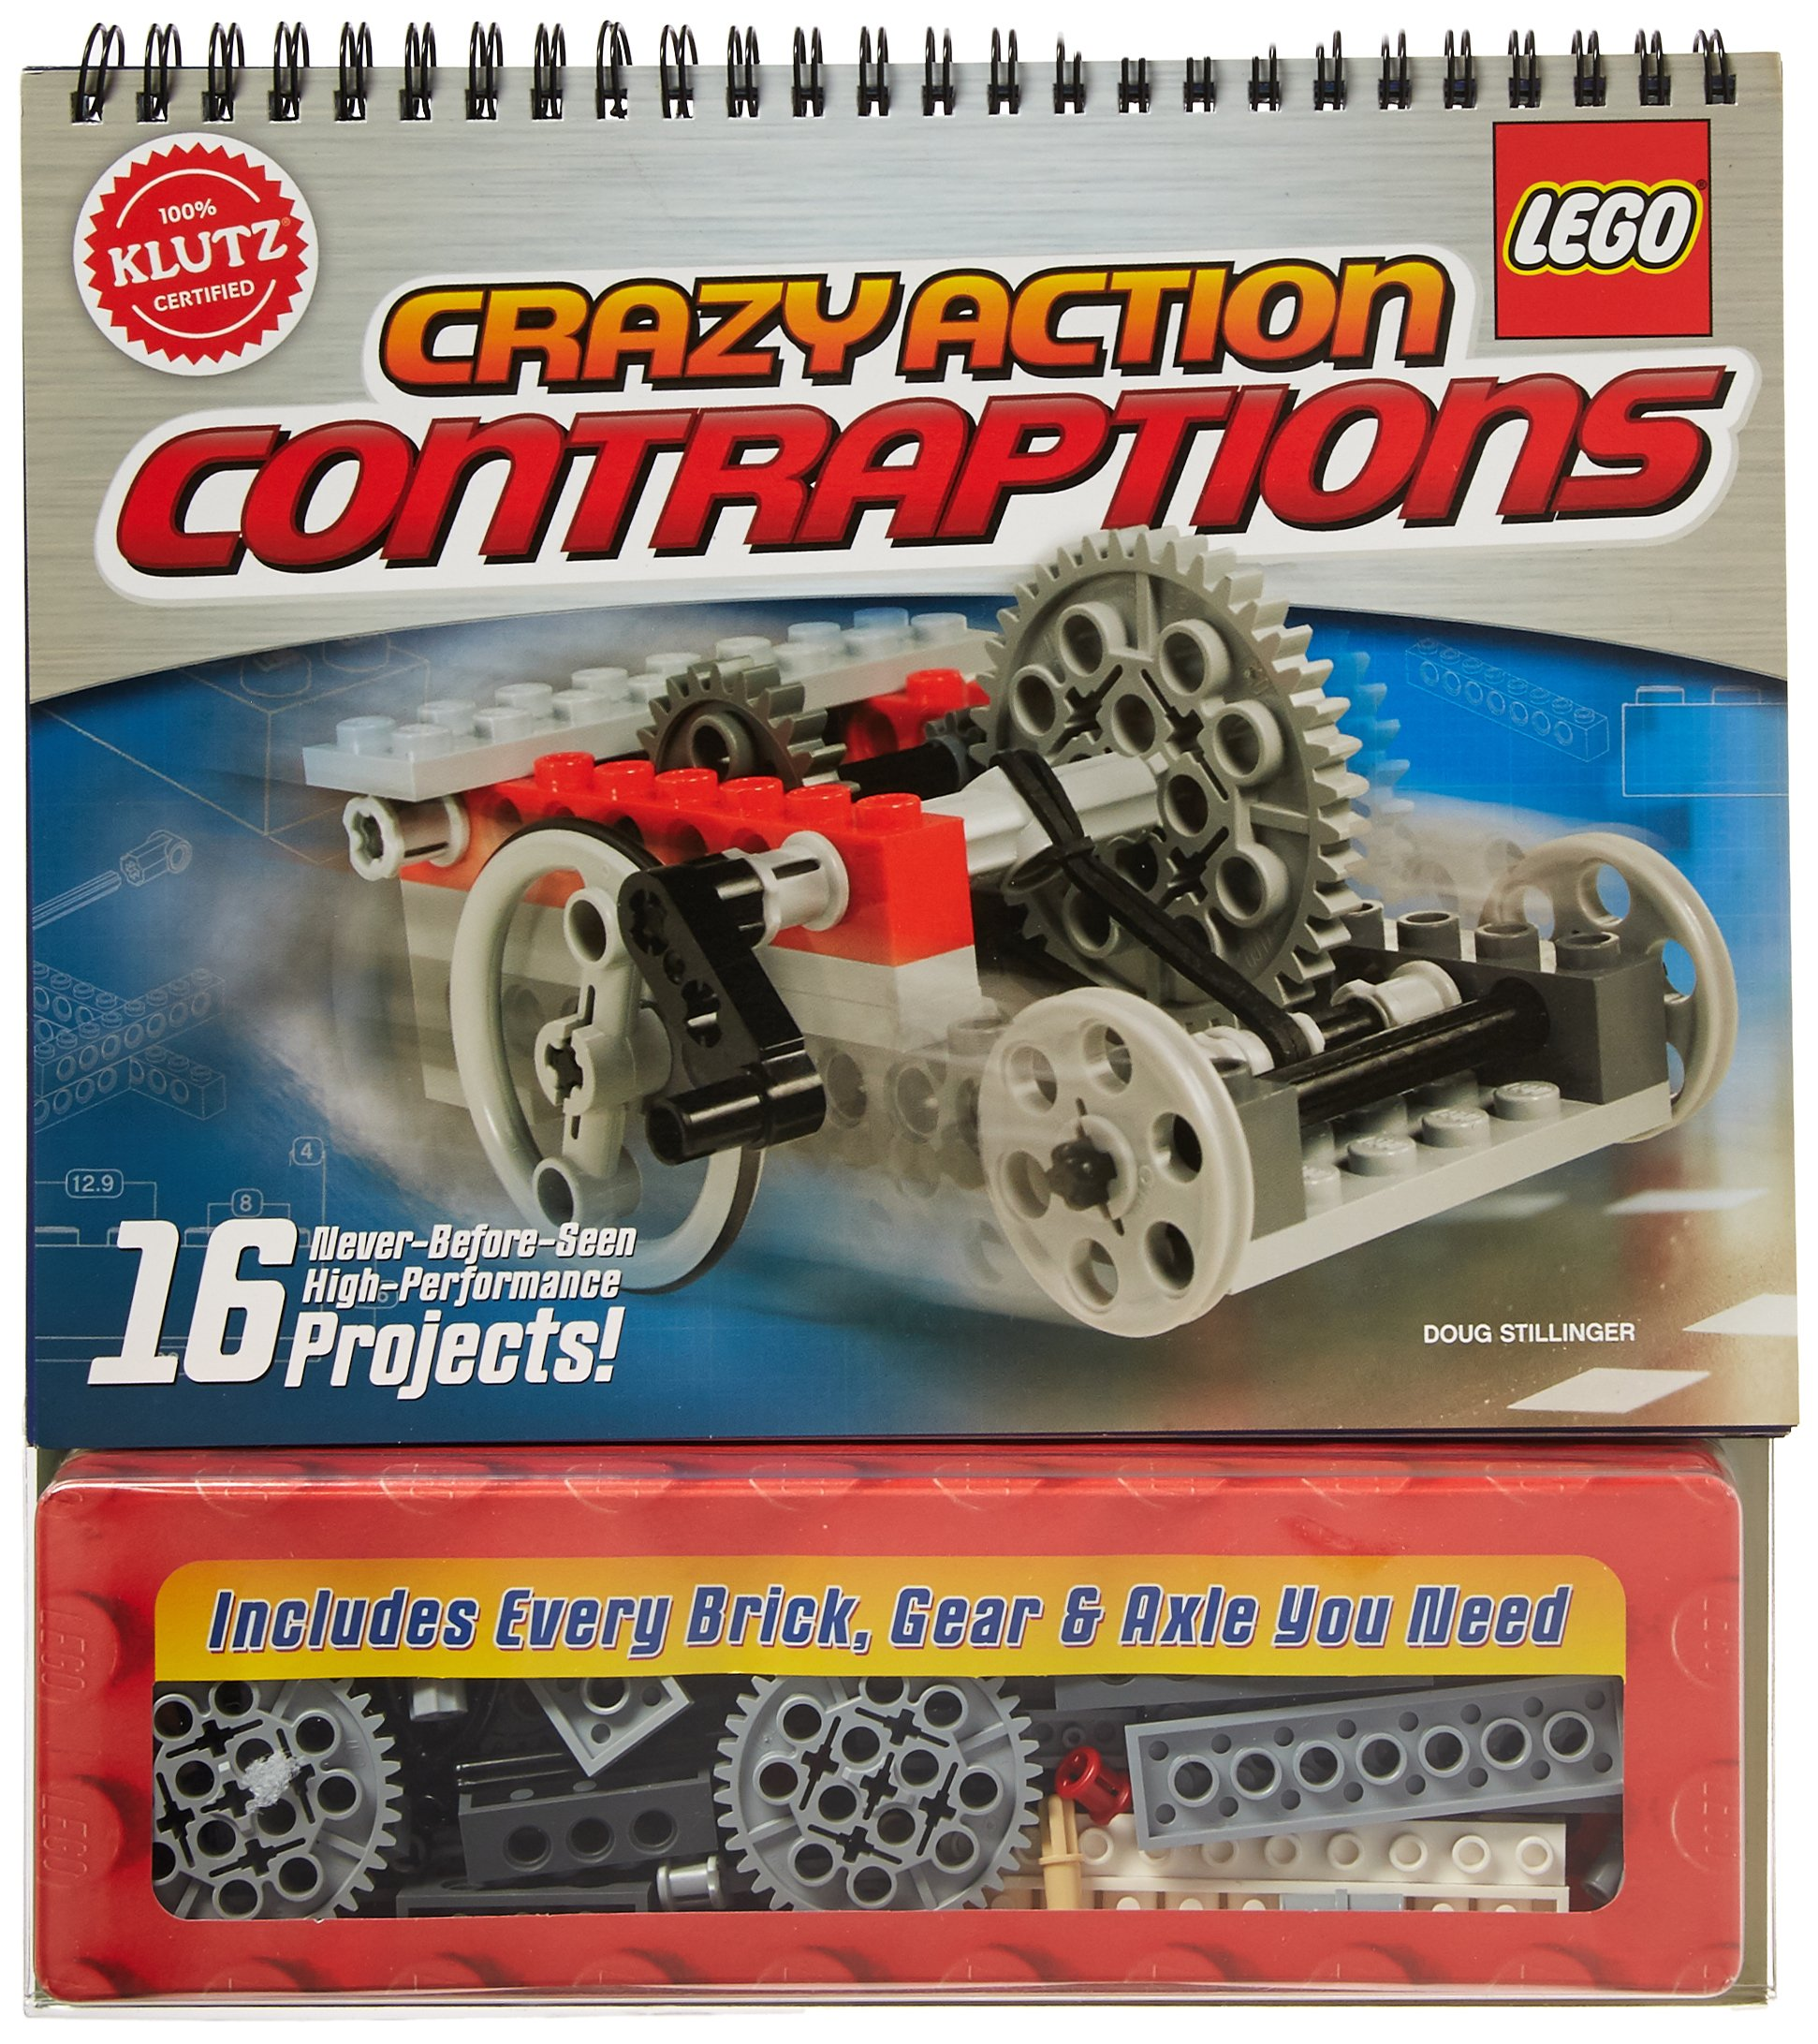 Buy Lego Crazy Action Contraptions by Klutz!